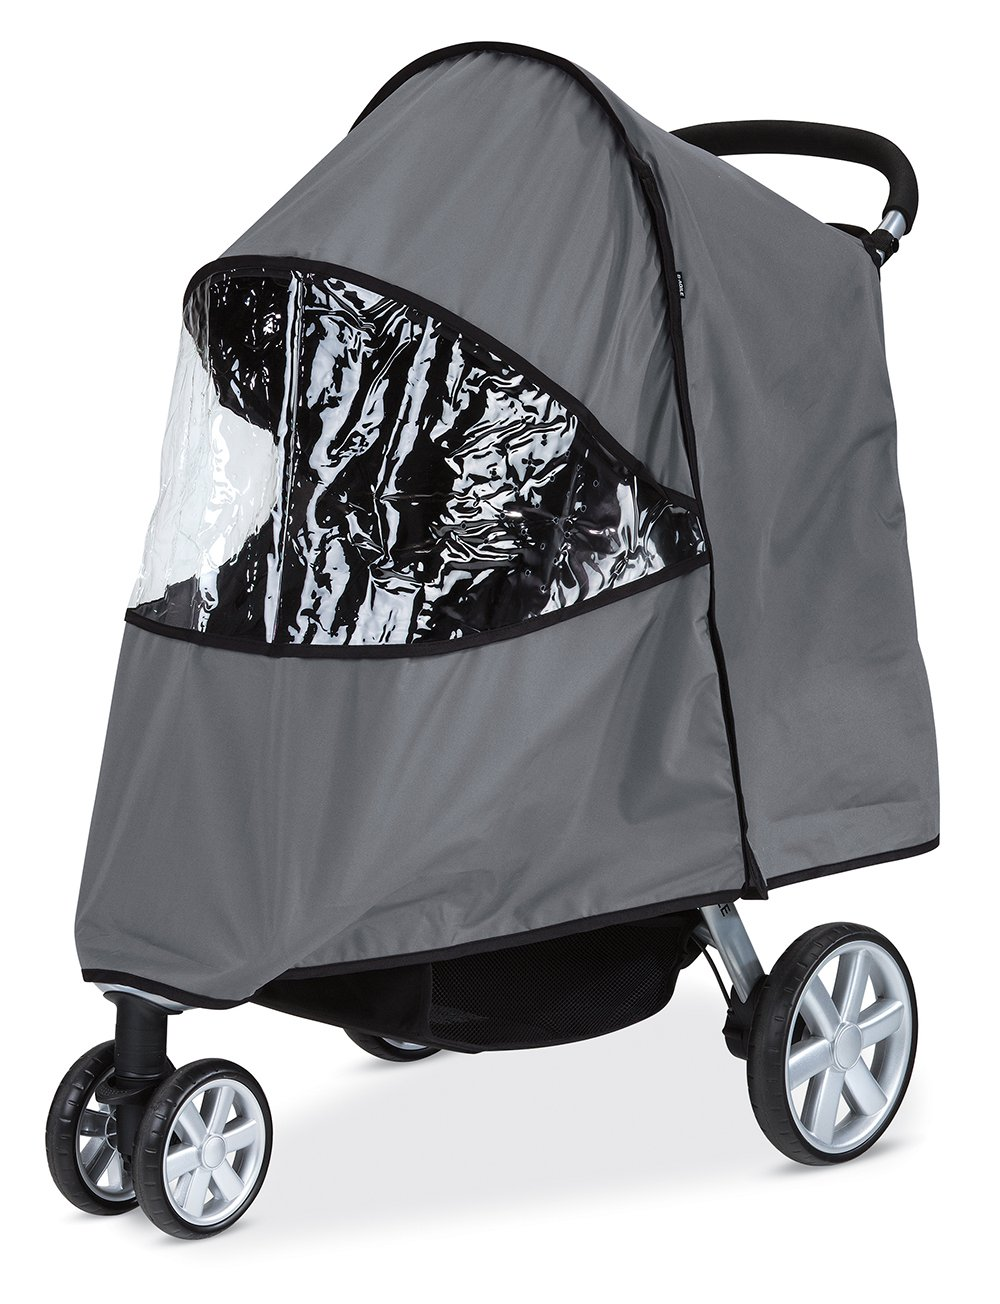 Britax Single B-Agile, B-Free, Pathway Strollers Wind and Rain Cover by BRITAX